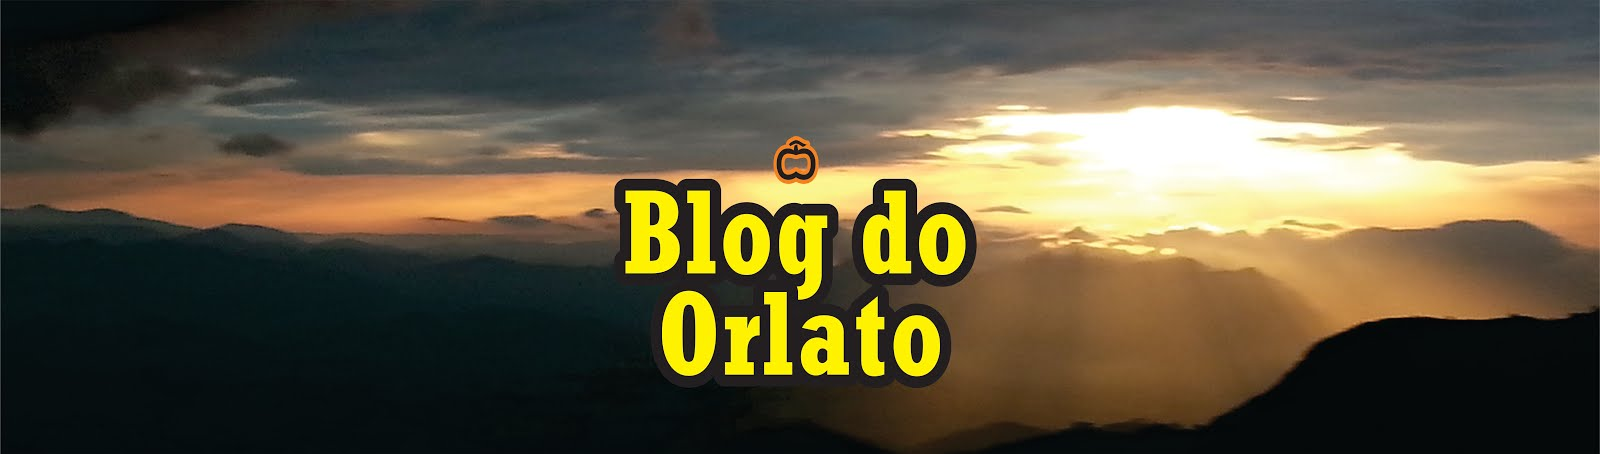 [Blog do Orlato]